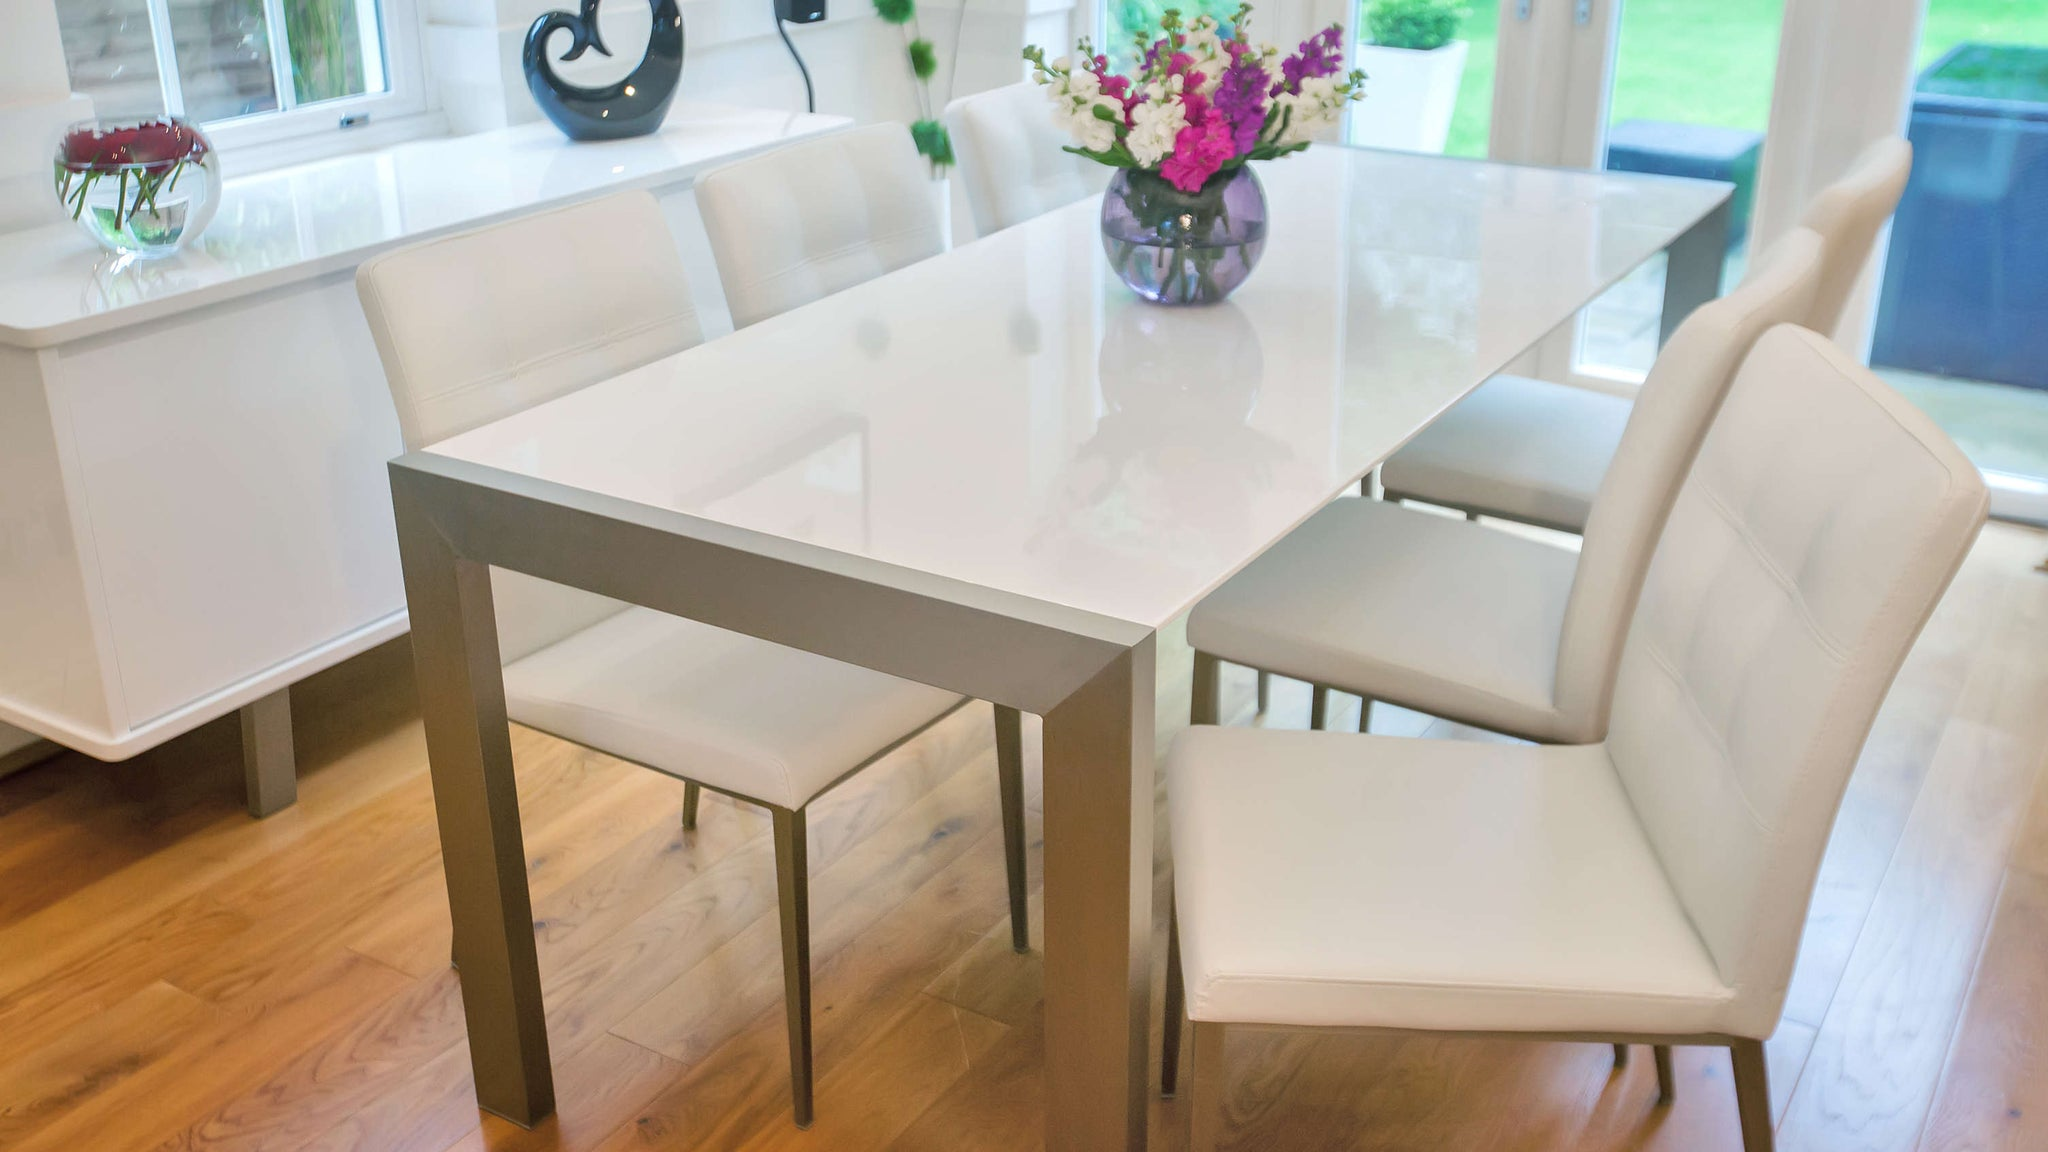 4-8 Seater White Gloss Extending Dining Table and White Chairs